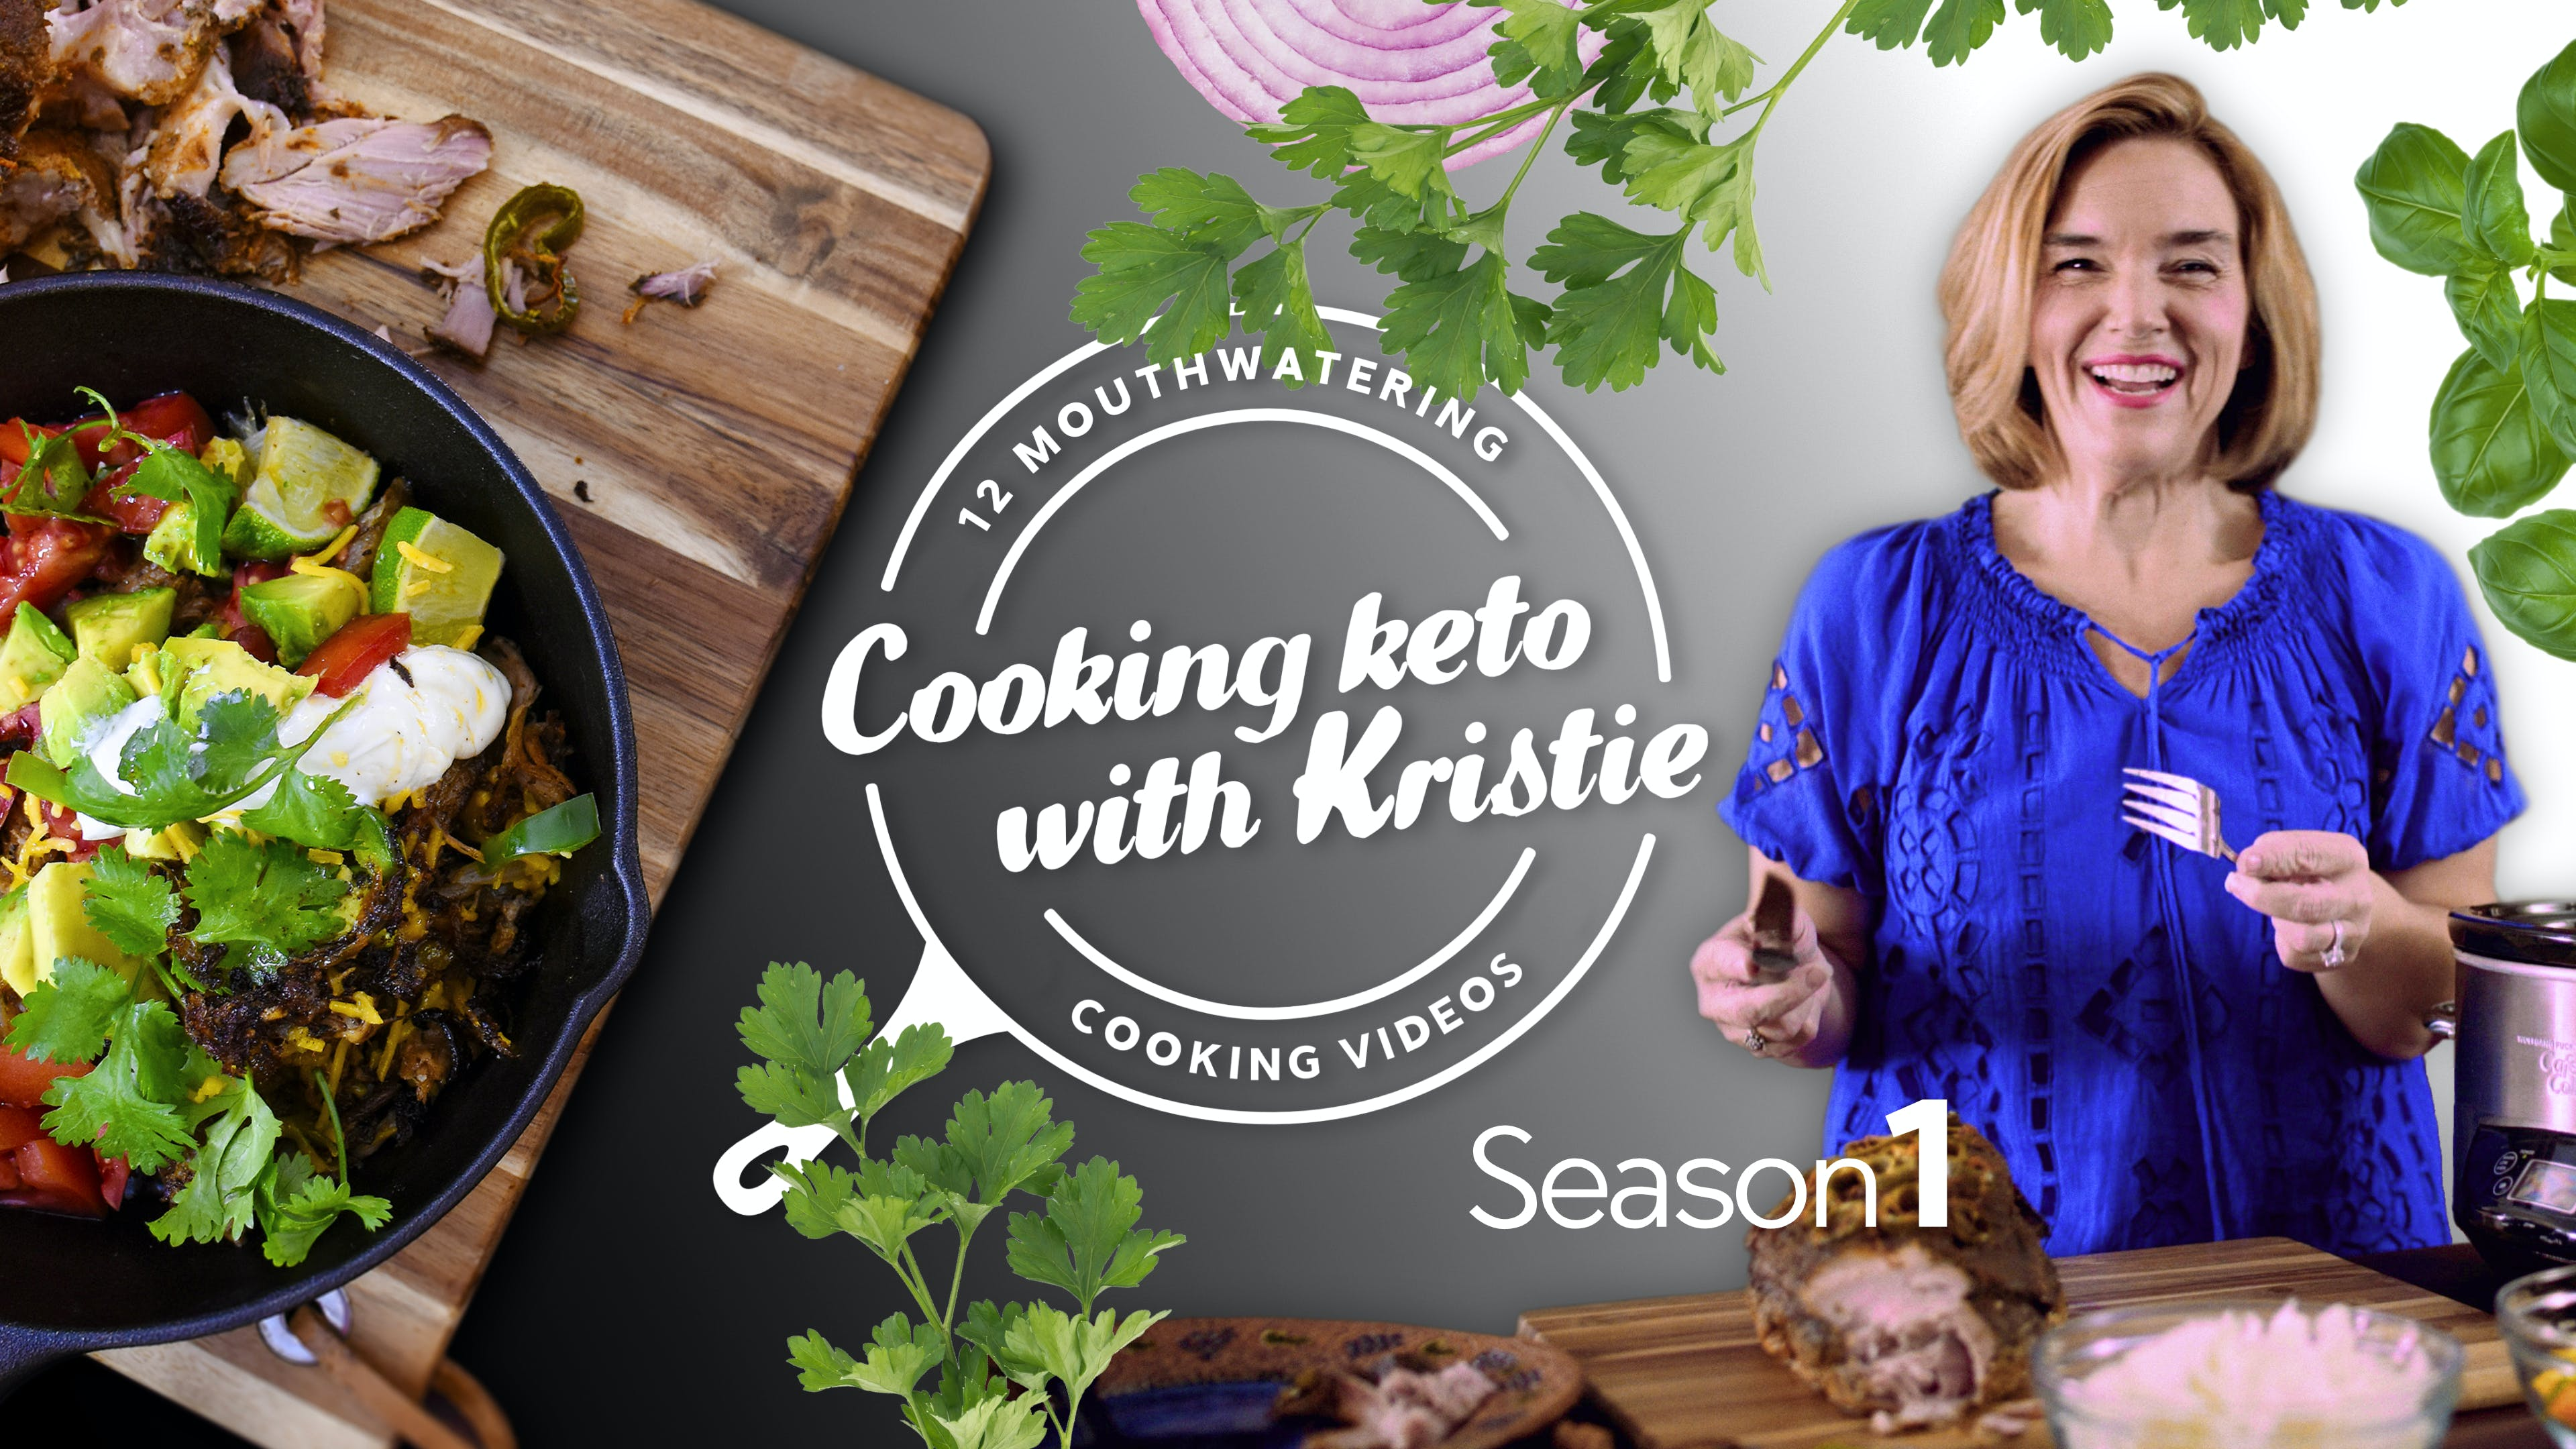 Season 1 trailer: Cooking Keto with Kristie